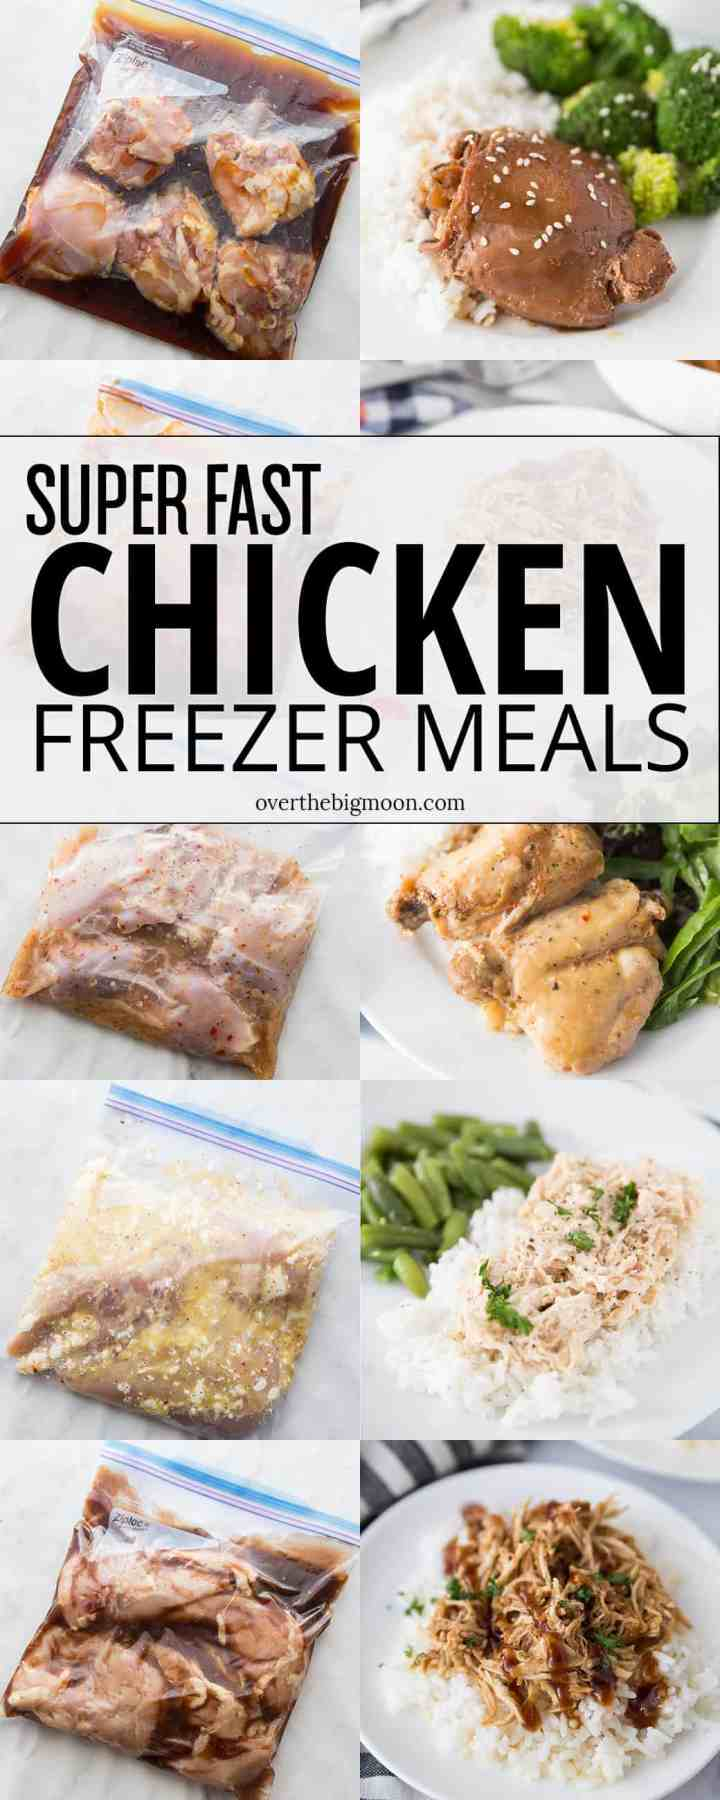 Super Fast Chicken Freezer Meals -- 7 recipes, makes 14 freezer meals in just 90 minutes! All our family friendly and super delicious! From overthebigmoon.com!